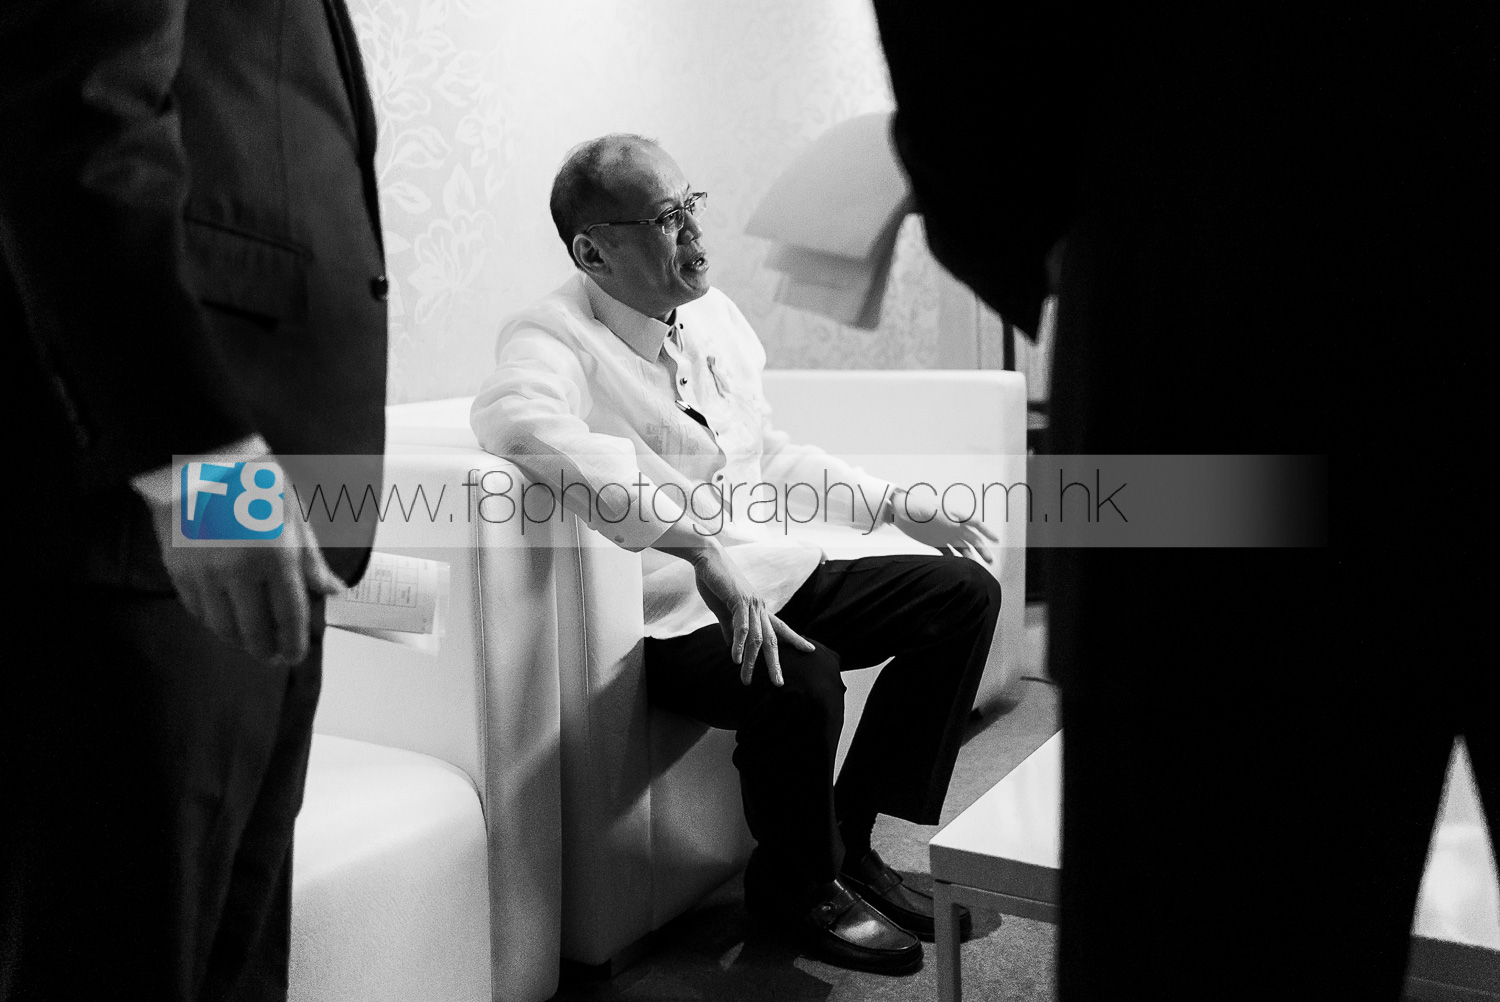 President Benigno S. Aquino III of the Philippines, backstage being briefed and surrounded by his bodyguards just before he officially opened the APEC 2015 Summit.